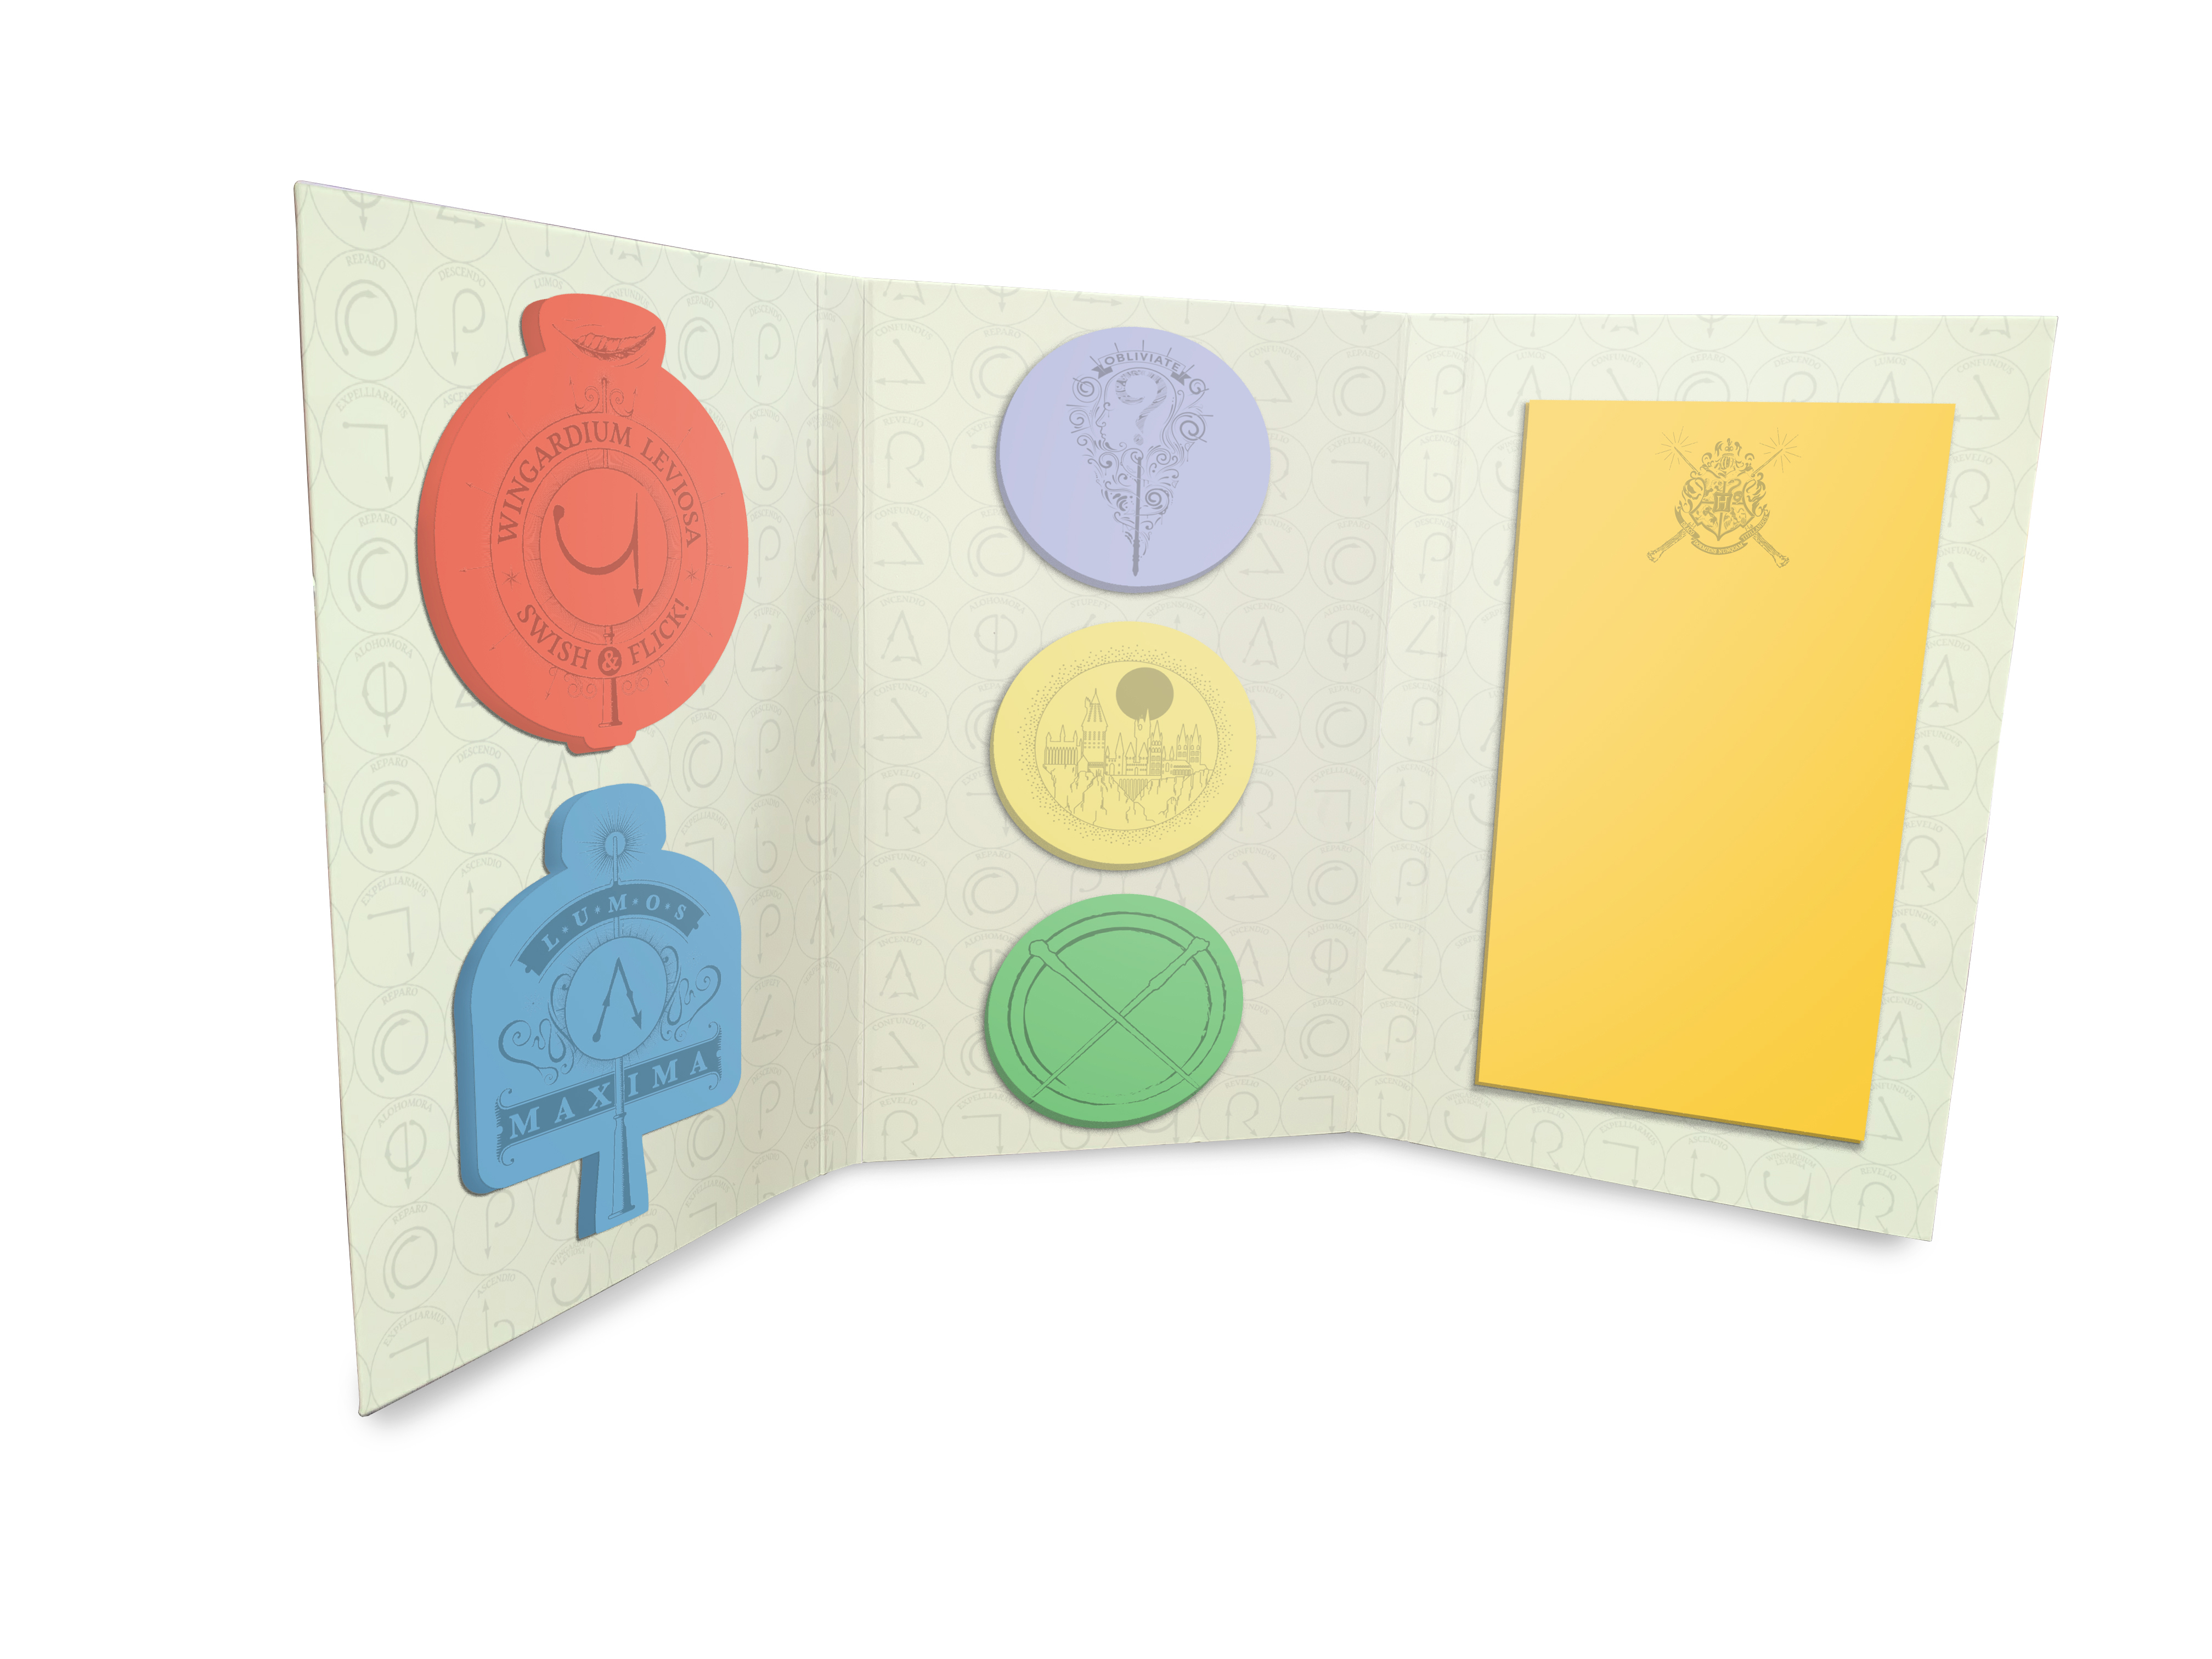 These sticky notes will look adorable along with the new weekly planner.